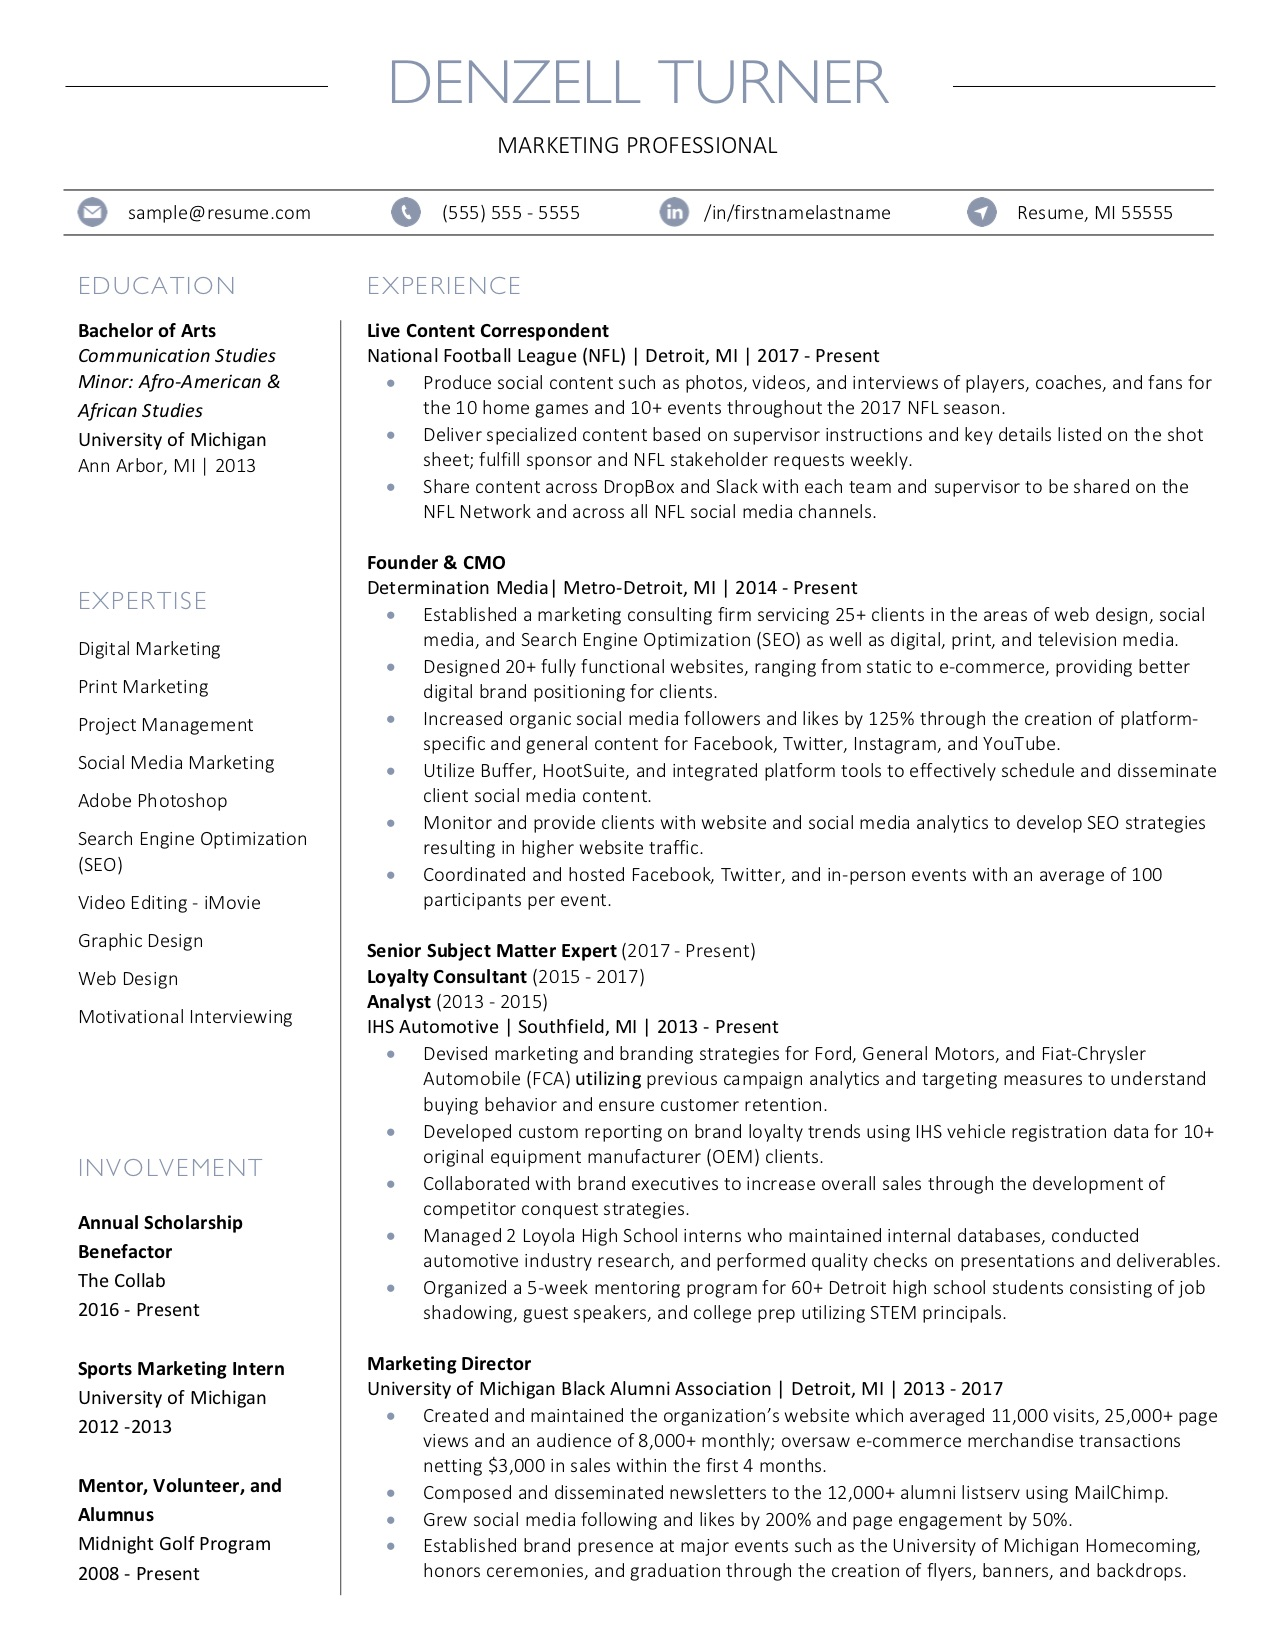 Client Resume #27. Click to enlarge.